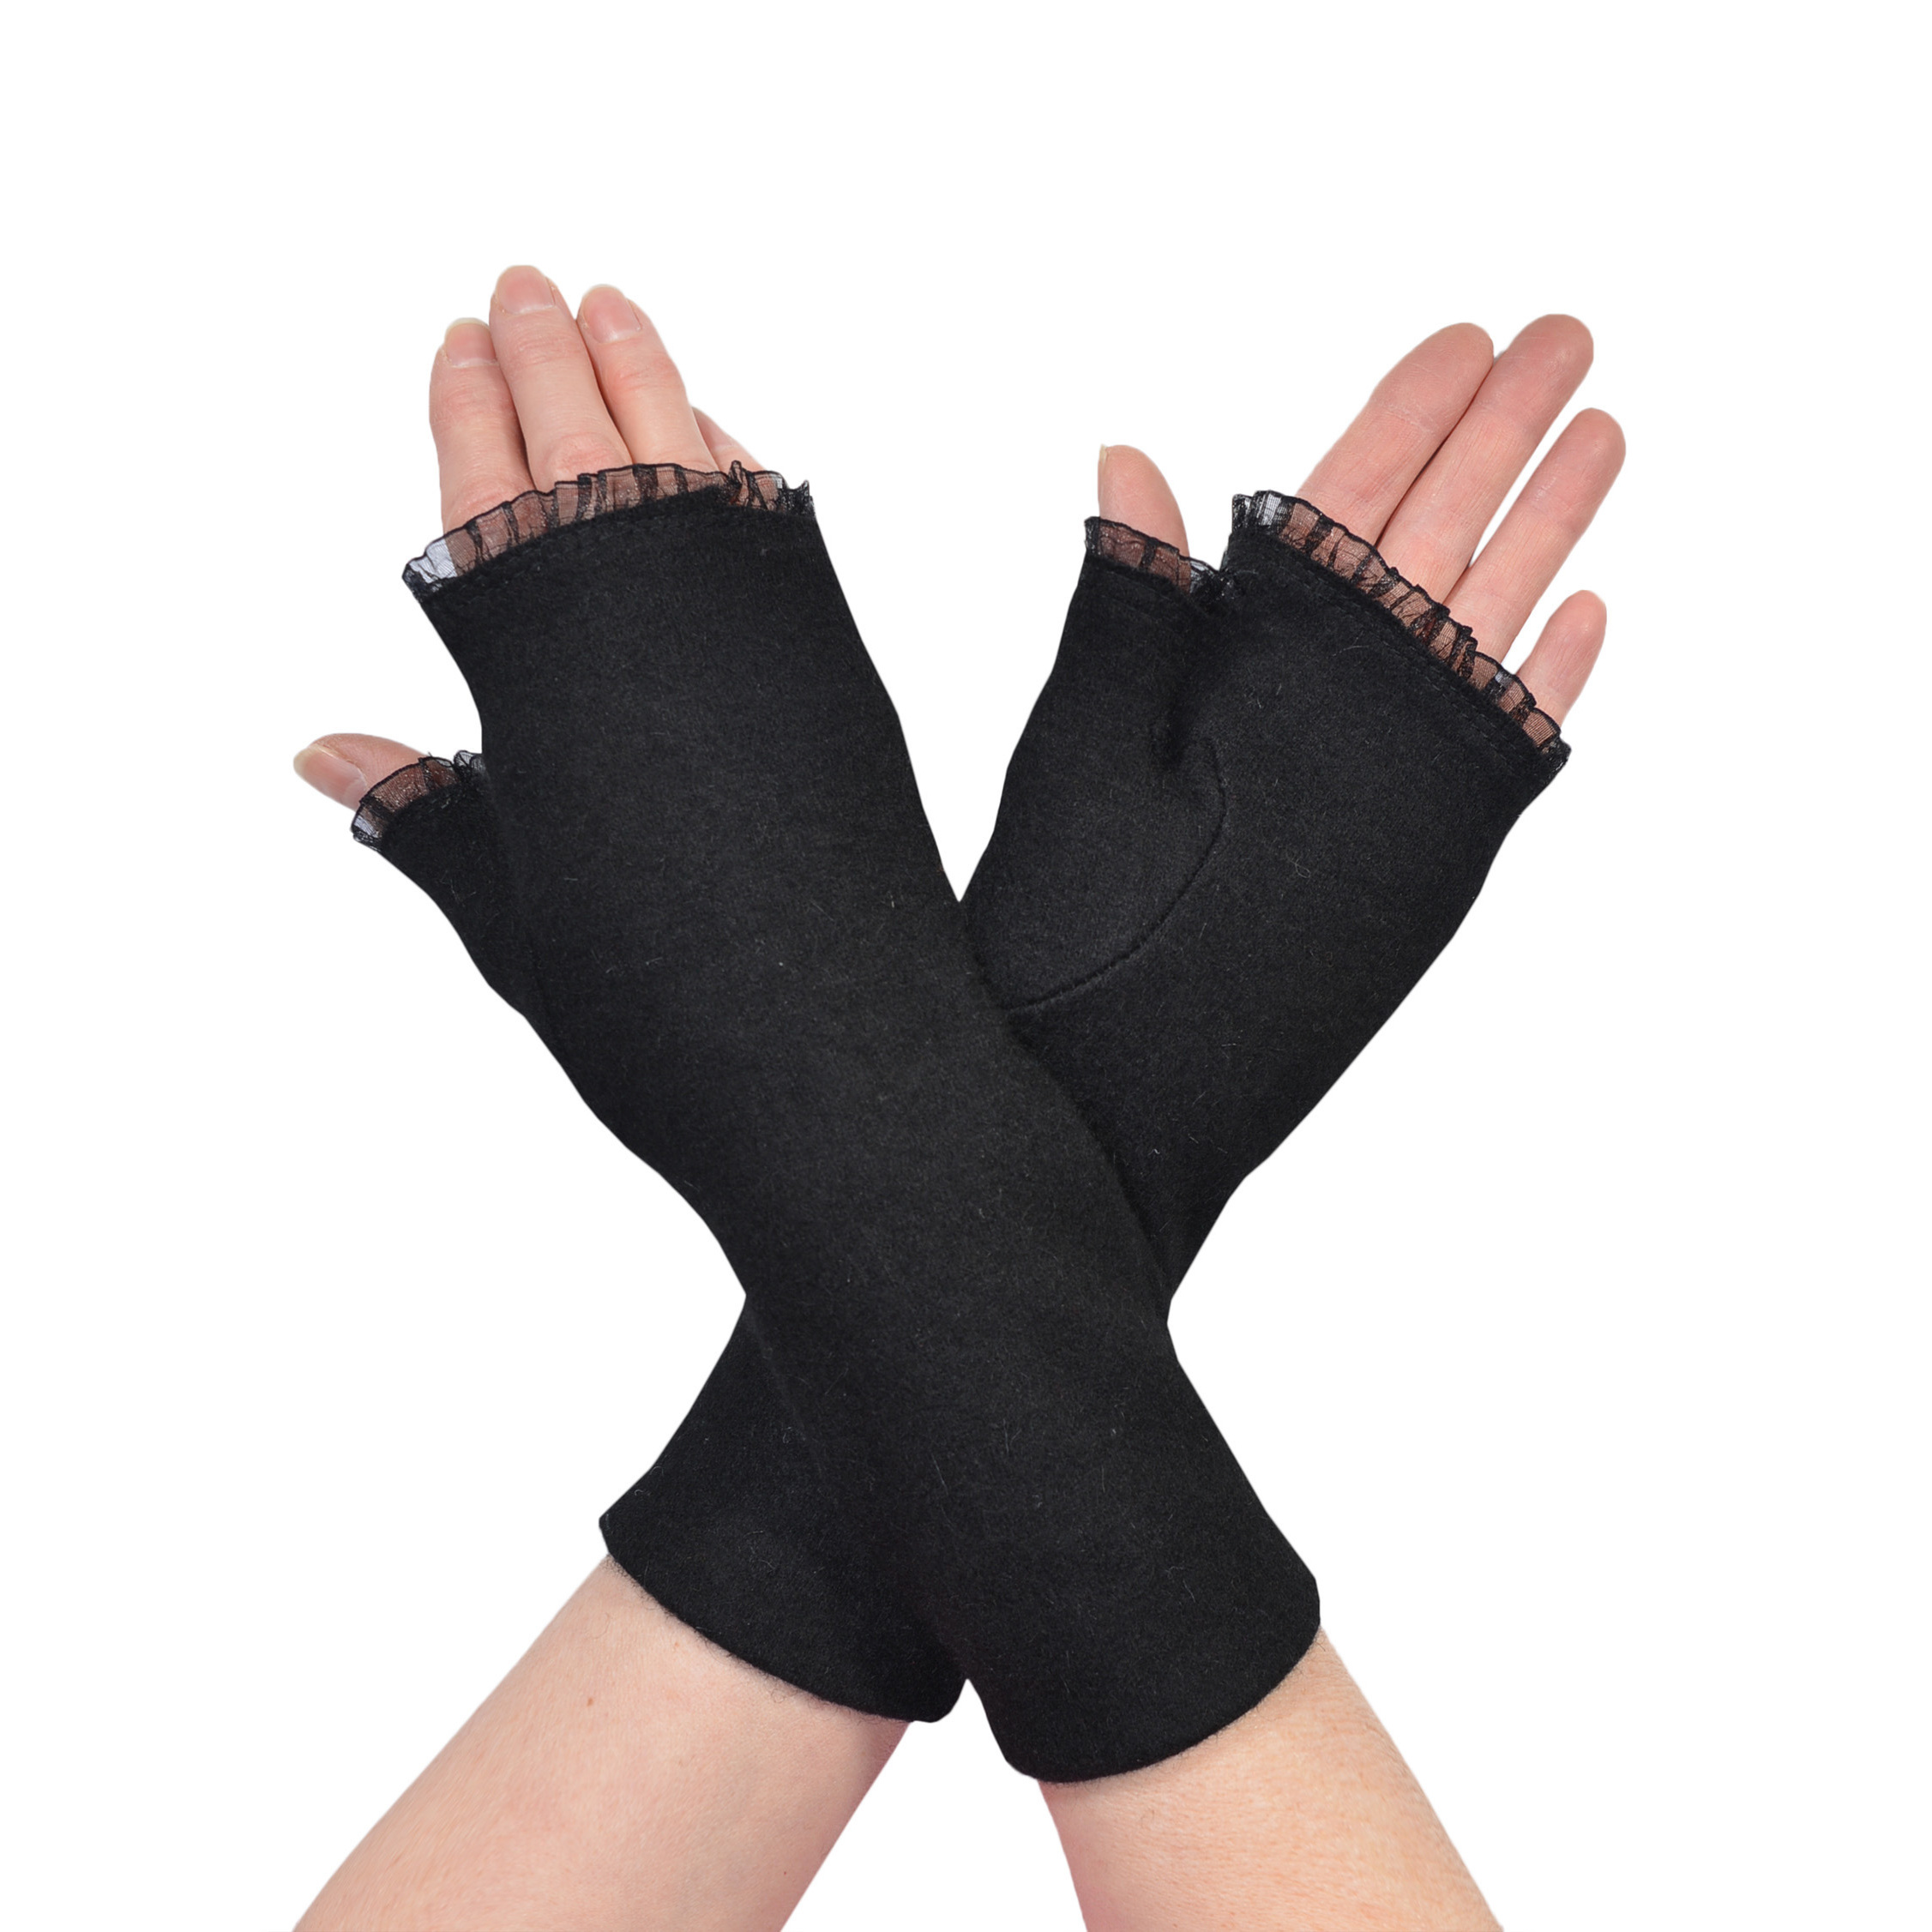 Womens Black Fingerless Gloves Chiffon Ruffle Trim Winter Fashion Wool Gloves